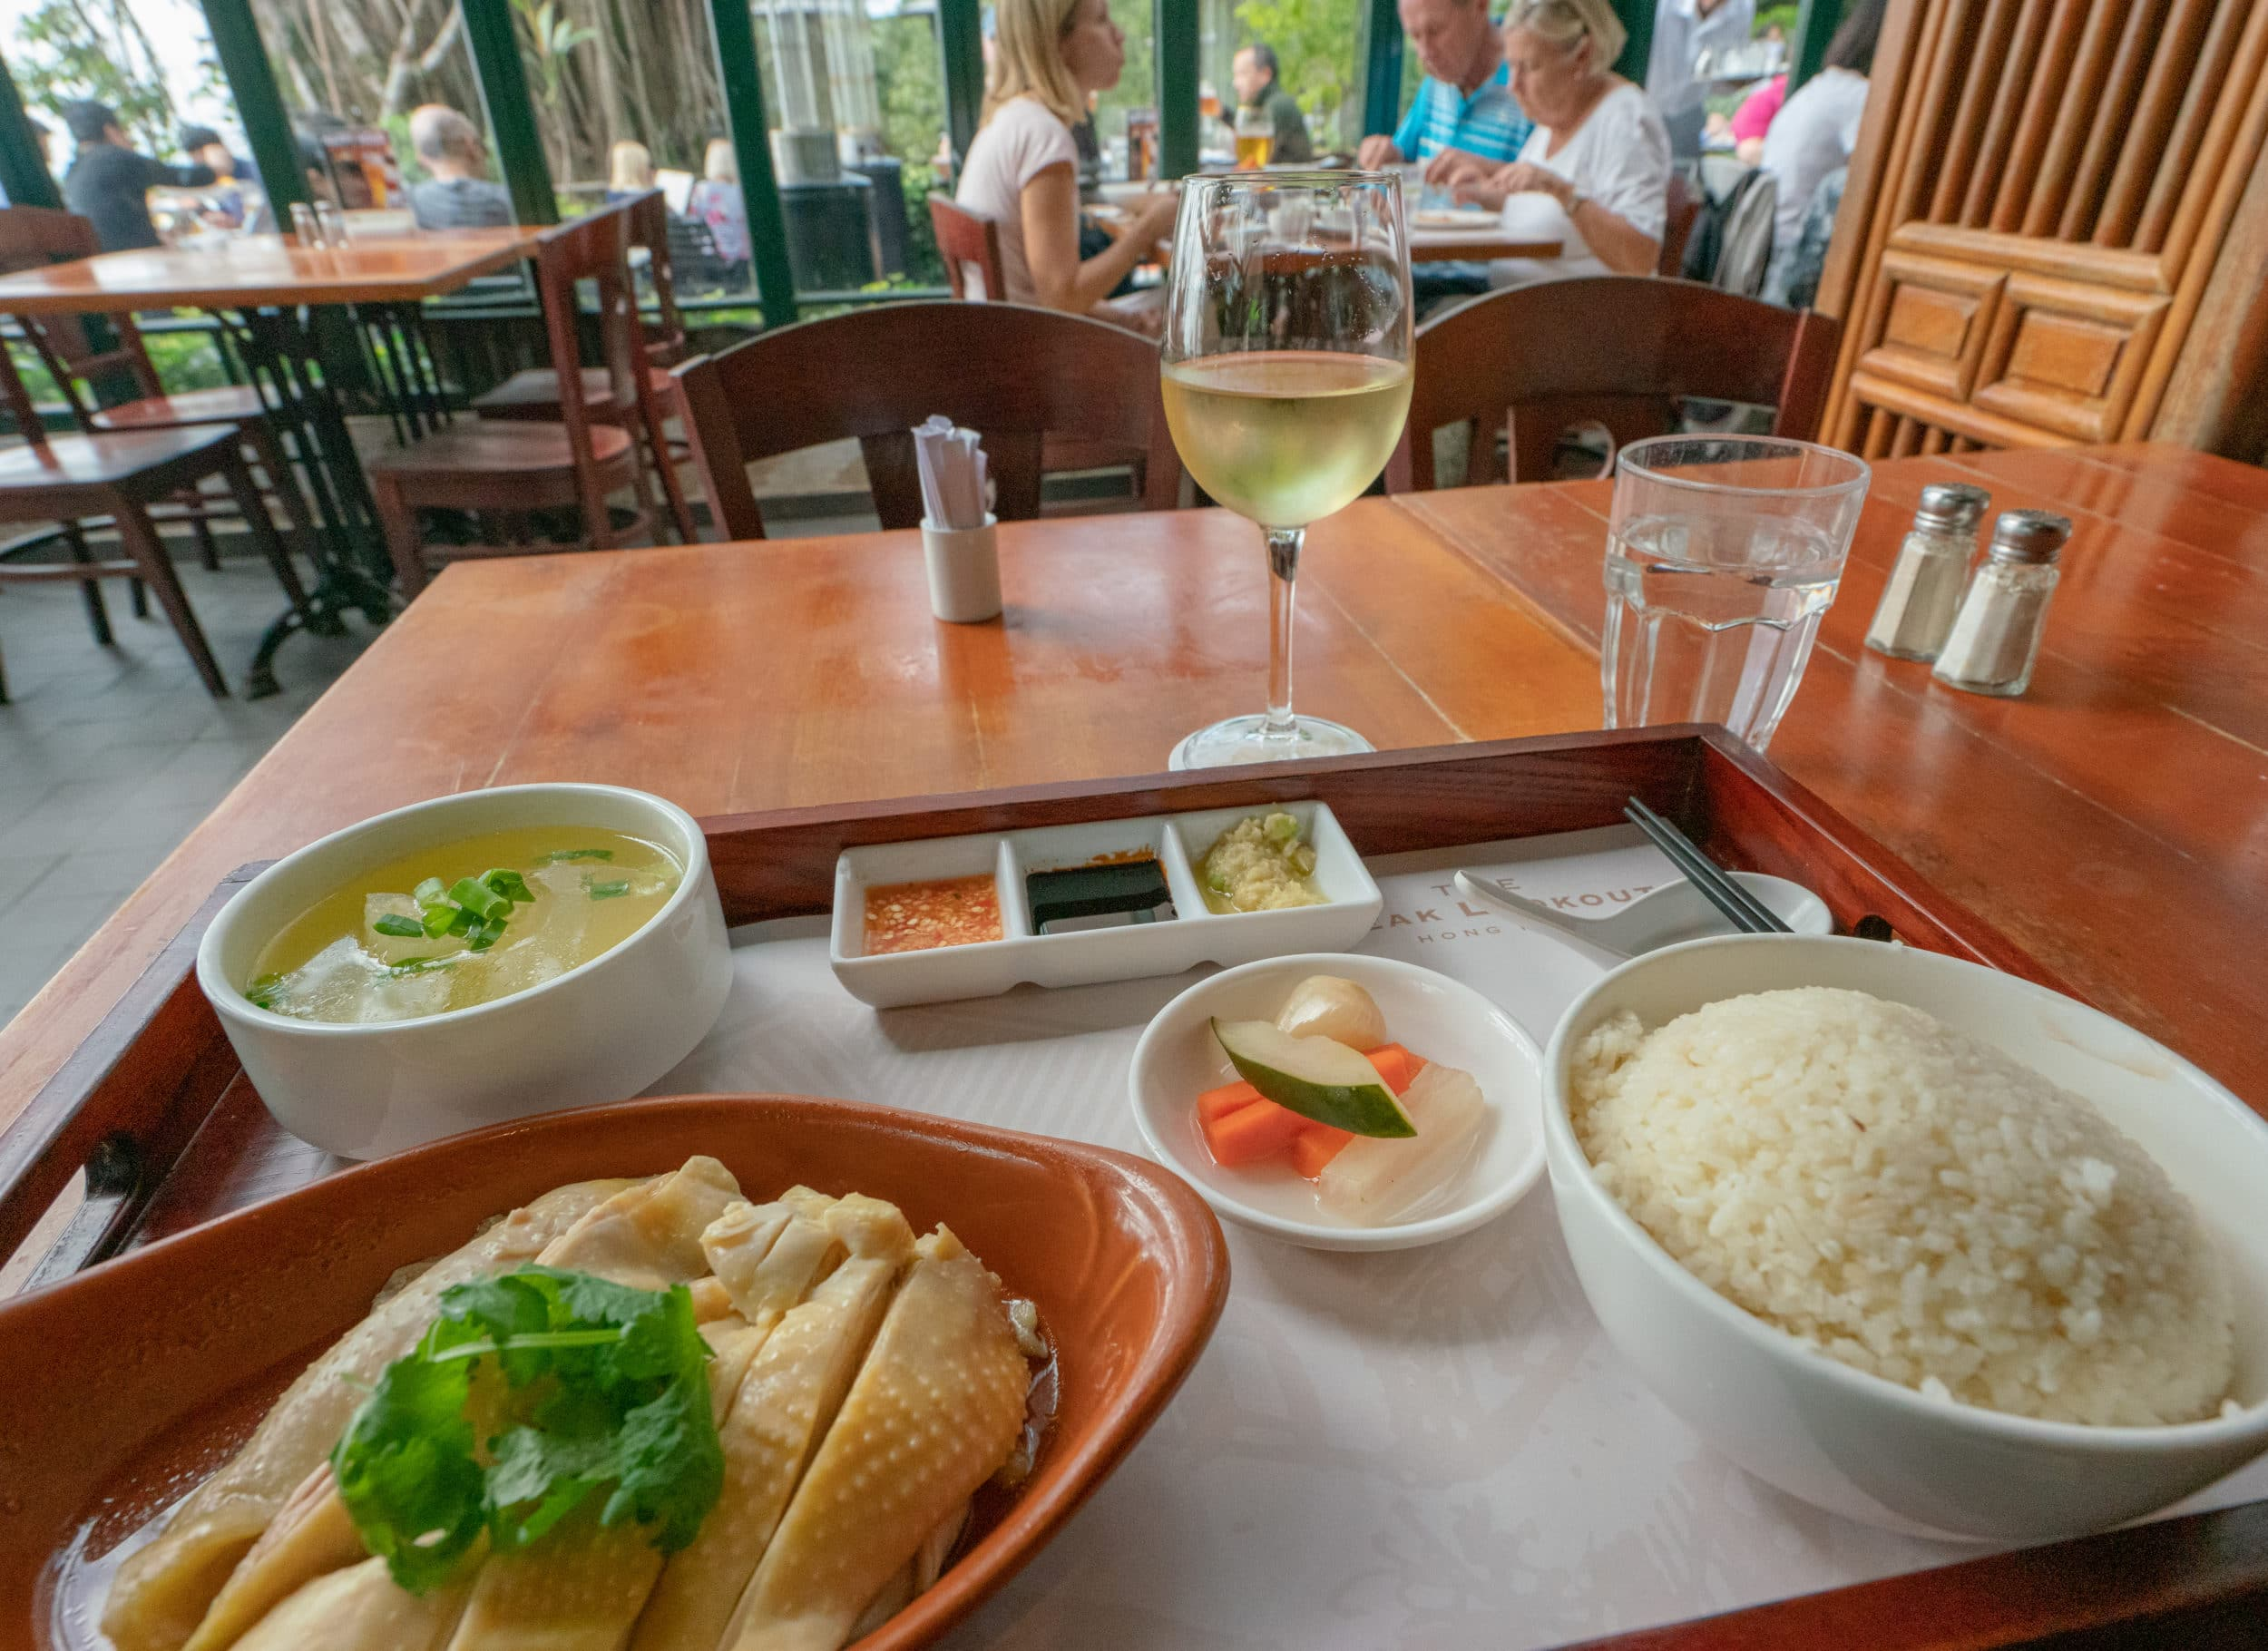 Hainanese Chicken at The Peak Lookout restaurant in Hong Kong